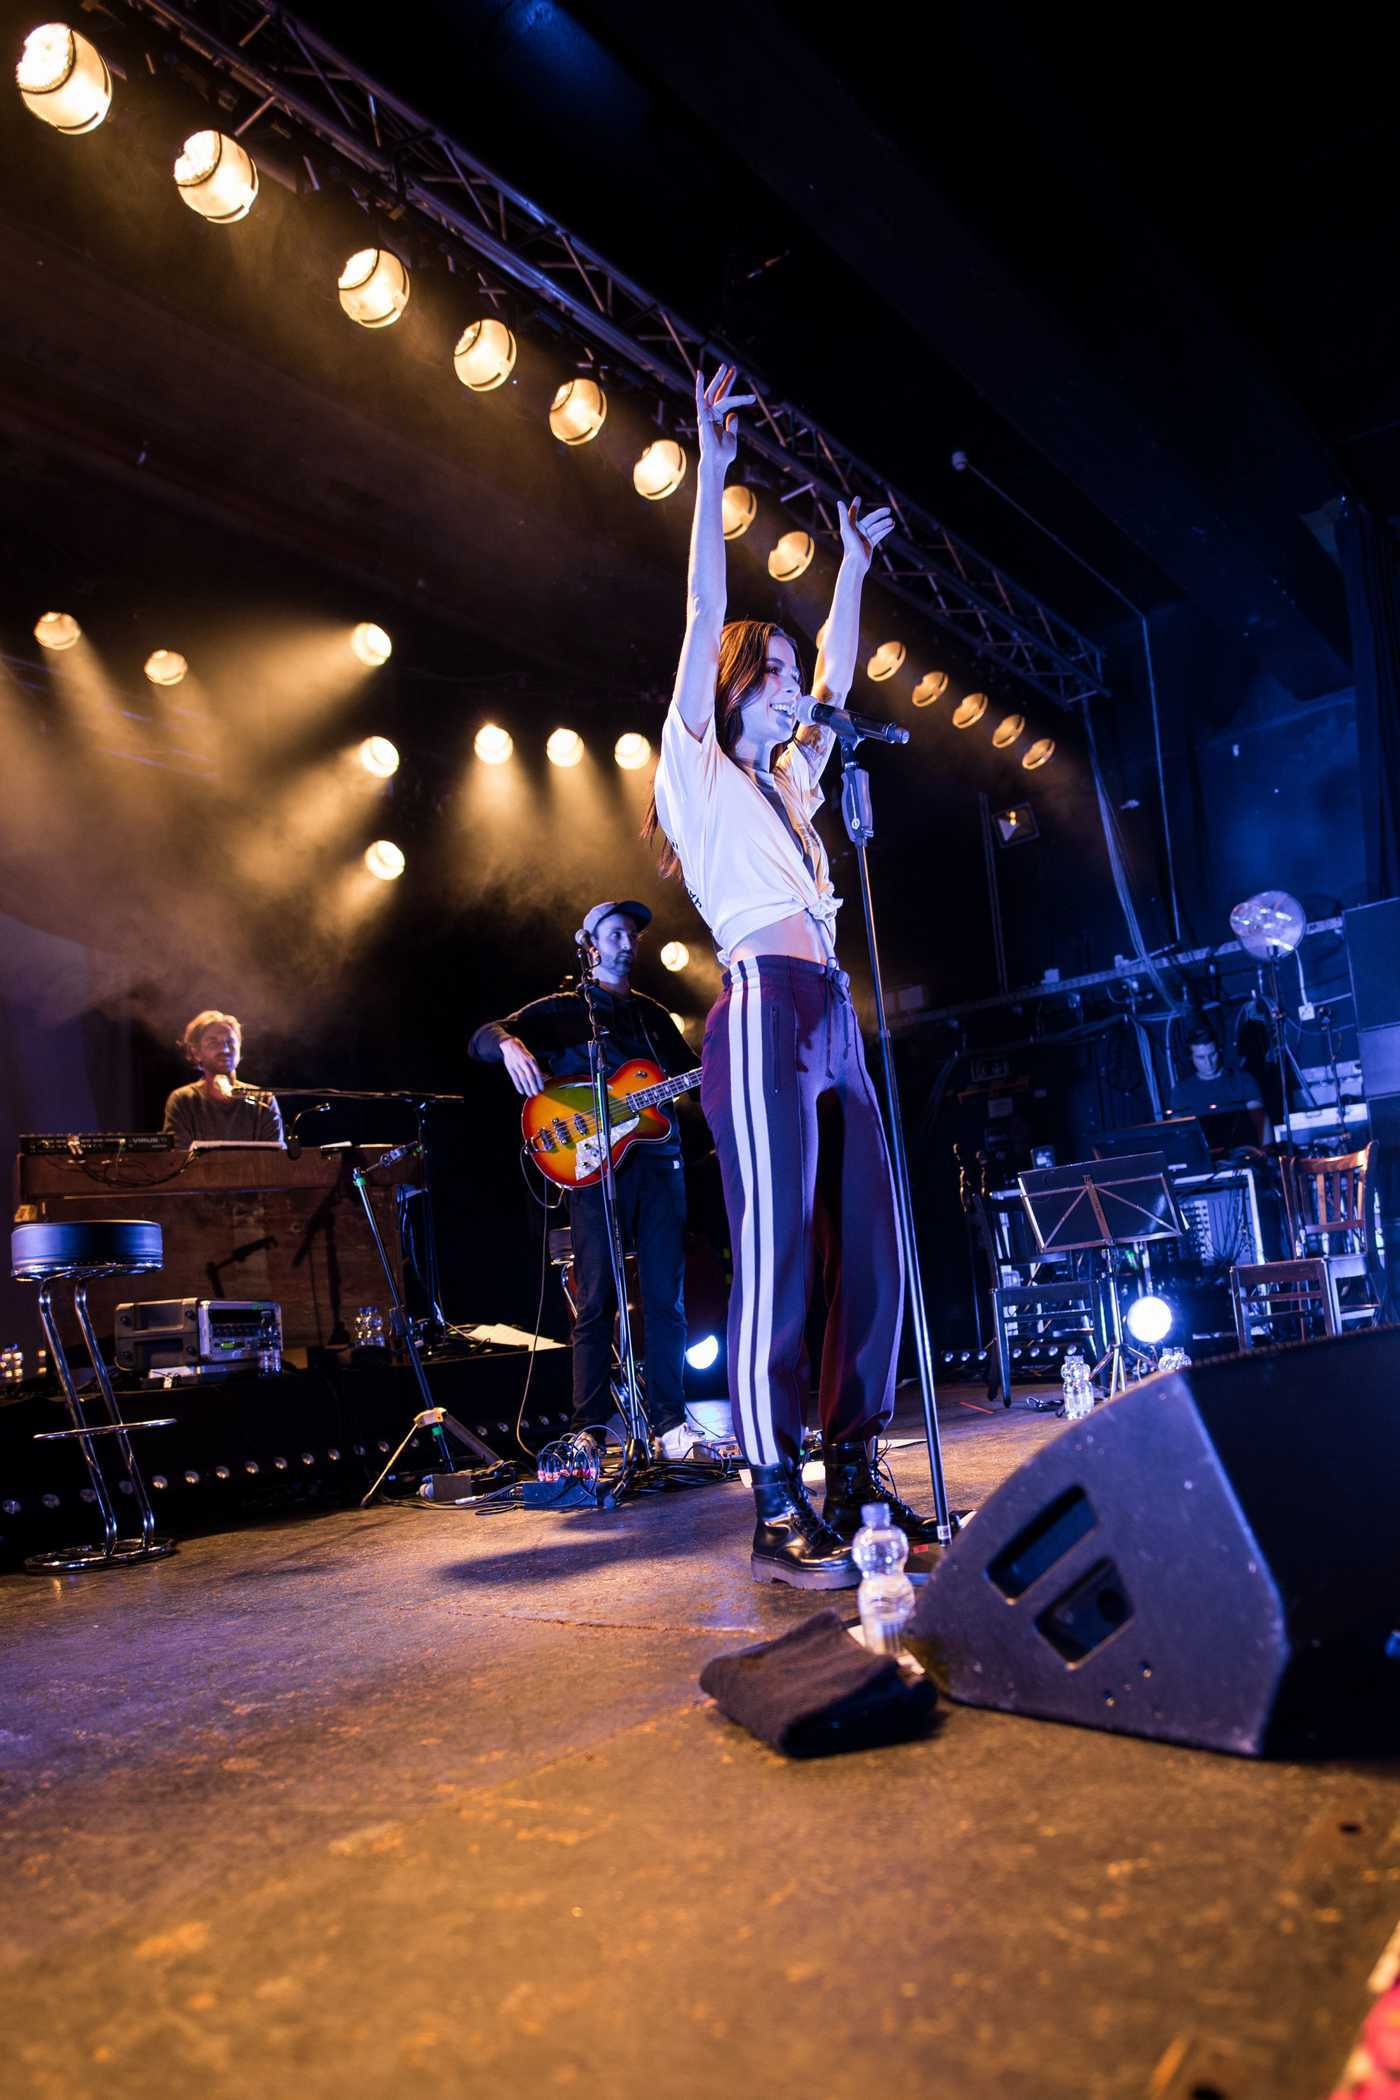 Lena Meyer-Landrut Performs During the End of Chapter One Tour in Hamburg 12/17/2017